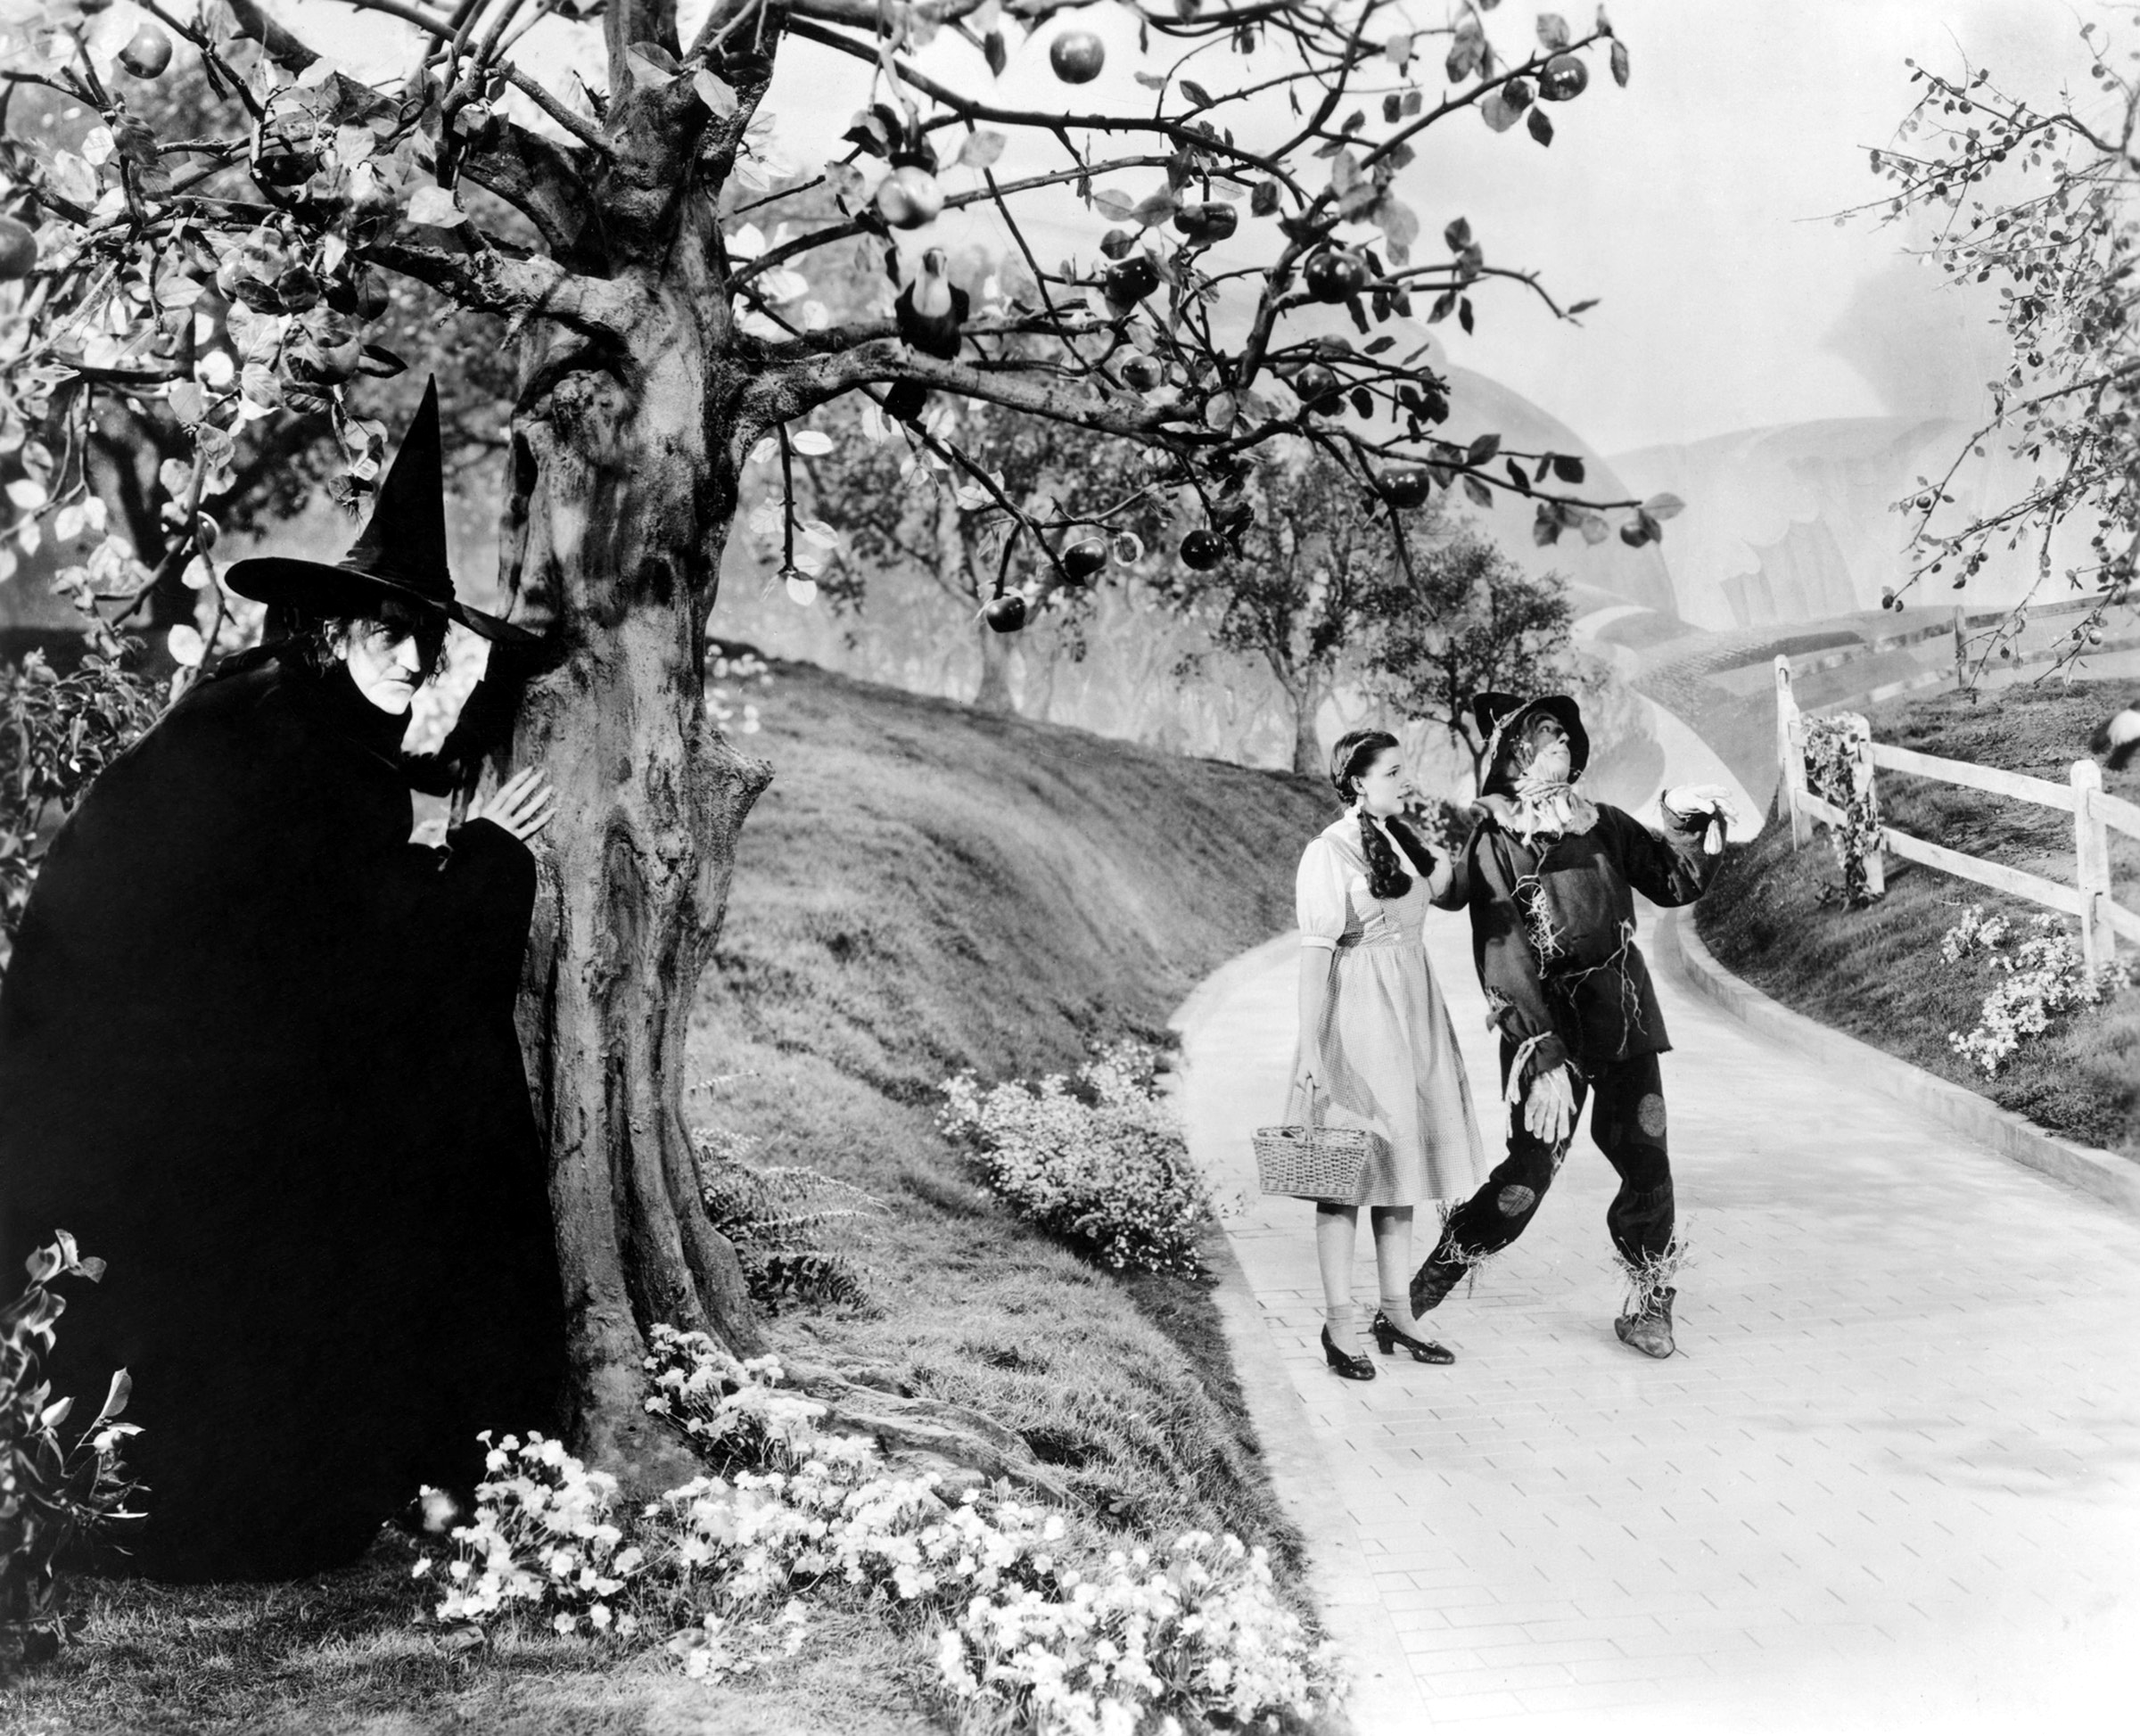 Black And White Tree Wallpaper Once Upon A Time Wizard Of Oz The 1939